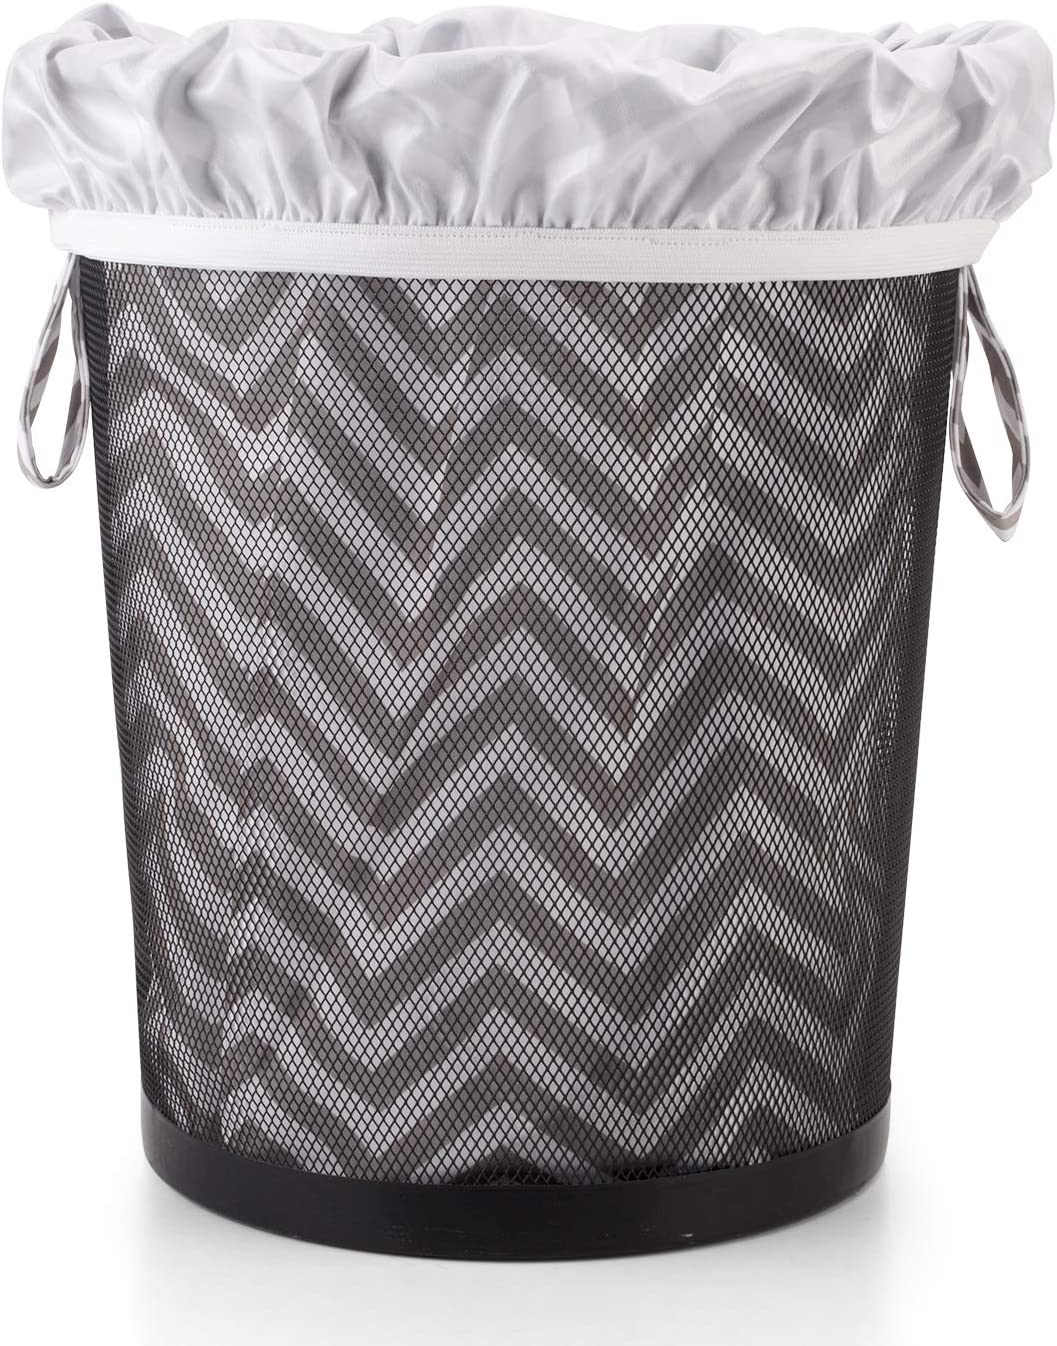 Teamoy Reusable Pail Liner for Cloth Diaper//Dirty Diapers Wet Bag Frogs